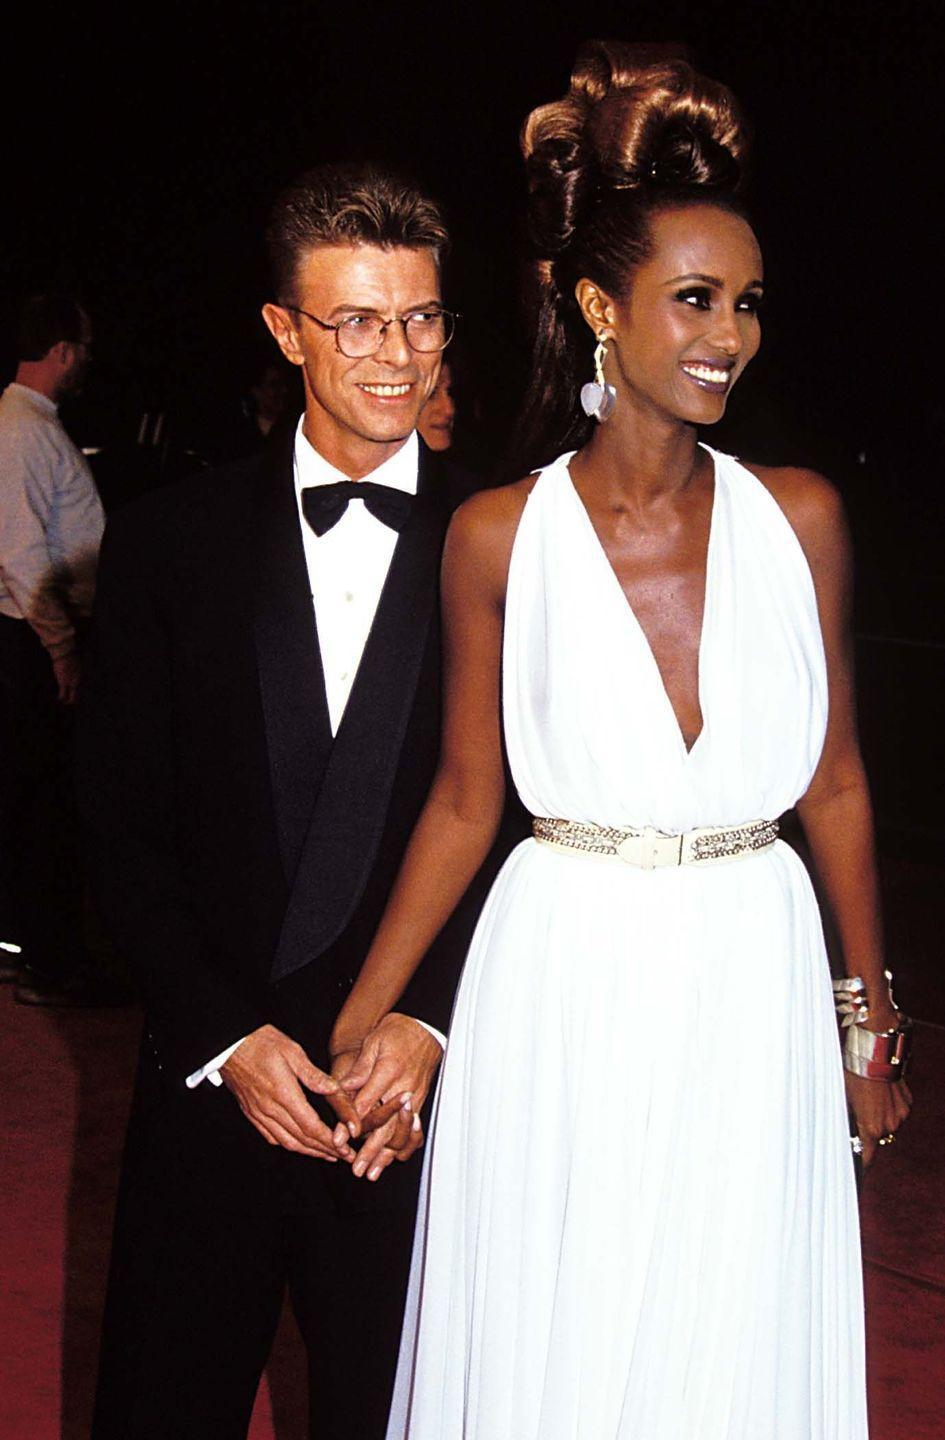 "<p>Rocker David Bowie and Iman <a href=""http://diffuser.fm/david-bowie-iman/"" rel=""nofollow noopener"" target=""_blank"" data-ylk=""slk:married"" class=""link rapid-noclick-resp"">married</a> on April 24, 1992, with only three people in attendance. The couple wed in a civil ceremony in Switzerland. They remained married until Bowie's death in January 2016 and have one daughter together, Alexandria Jones. </p>"